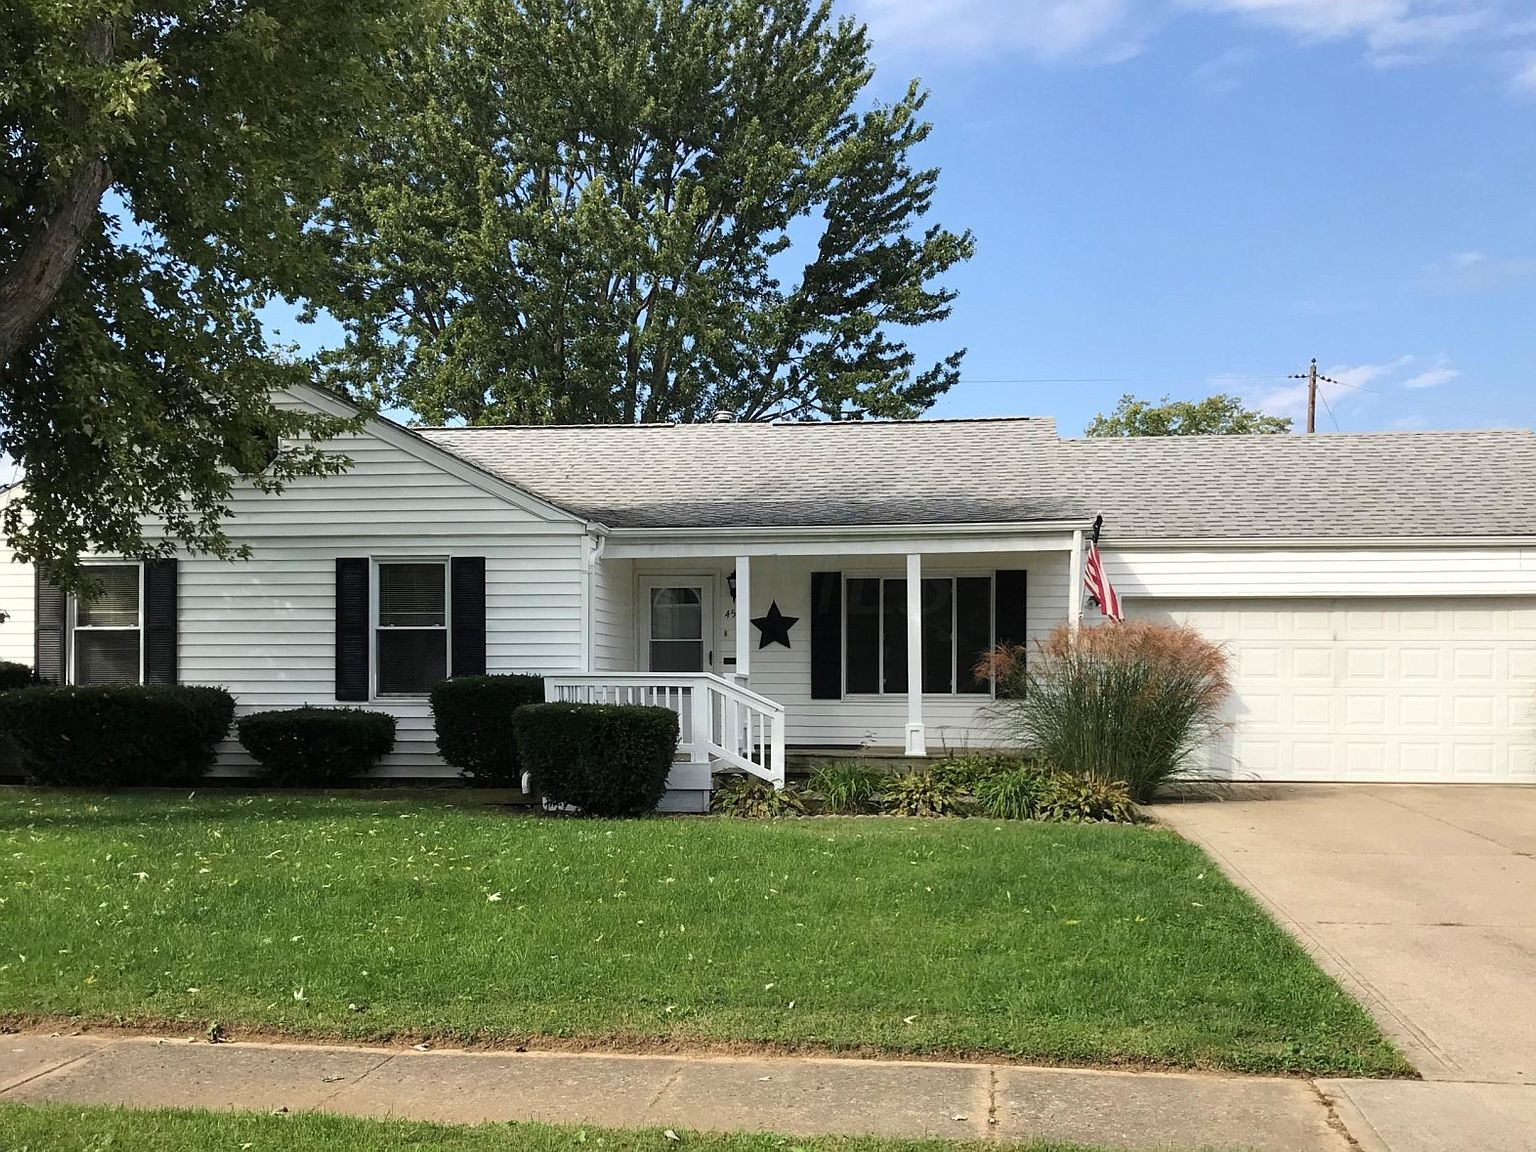 453 Edwards Rd Circleville Oh 43113 Zillow